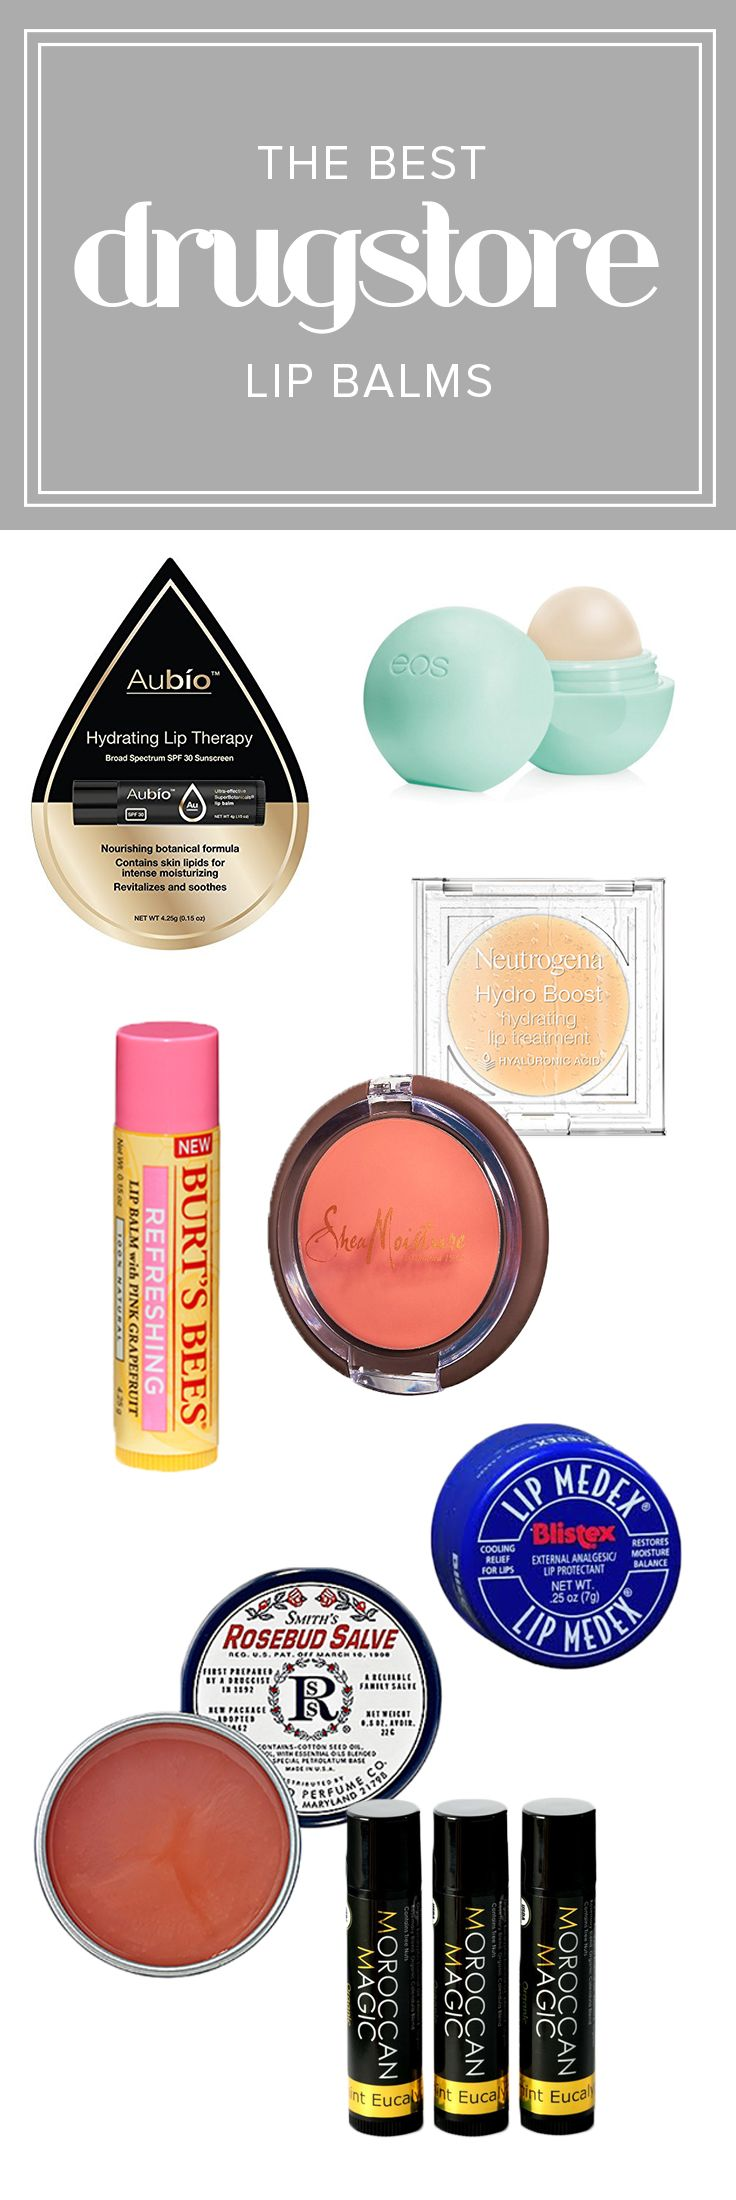 The Best Drugstore Lip Balms Celebrity Makeup Artists Love With